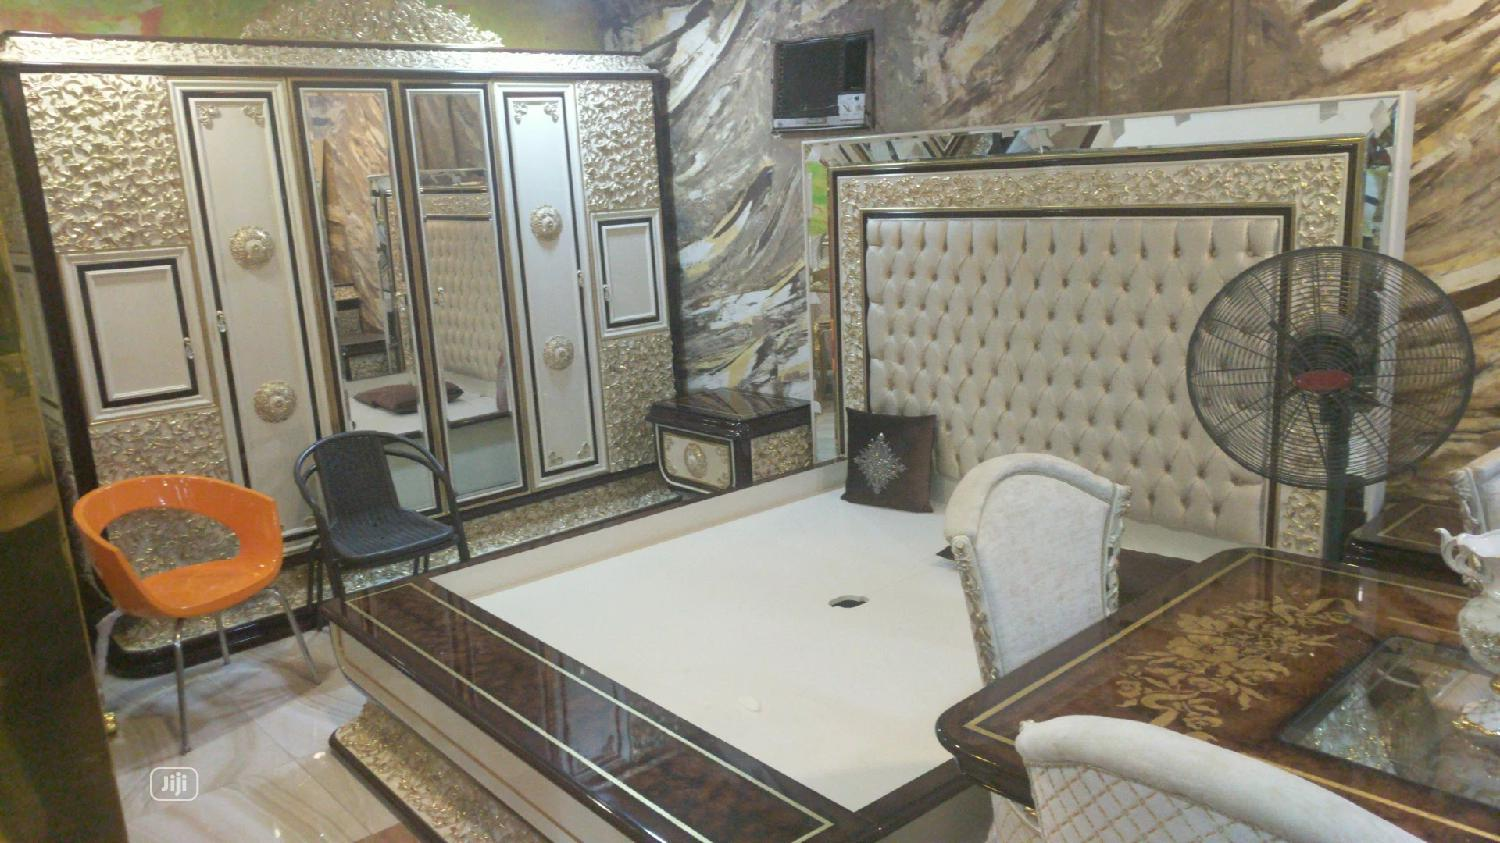 Turkish Executive Royal Complete Set of Bed